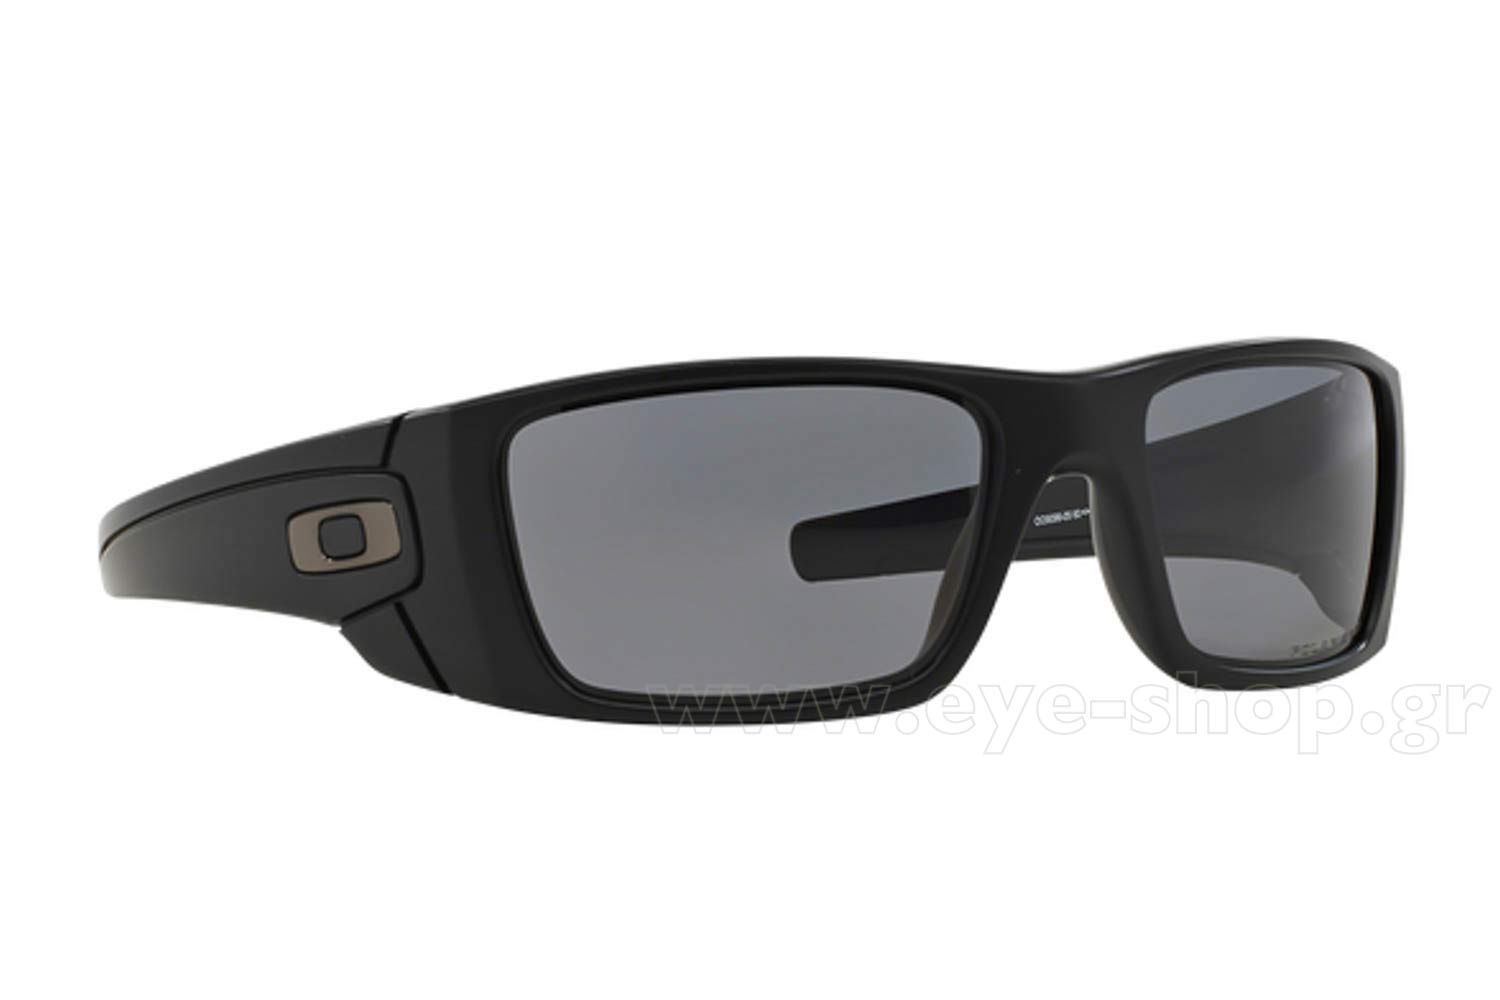 966d488ae6 Oakley Fuel Cell 9096 05 polarized